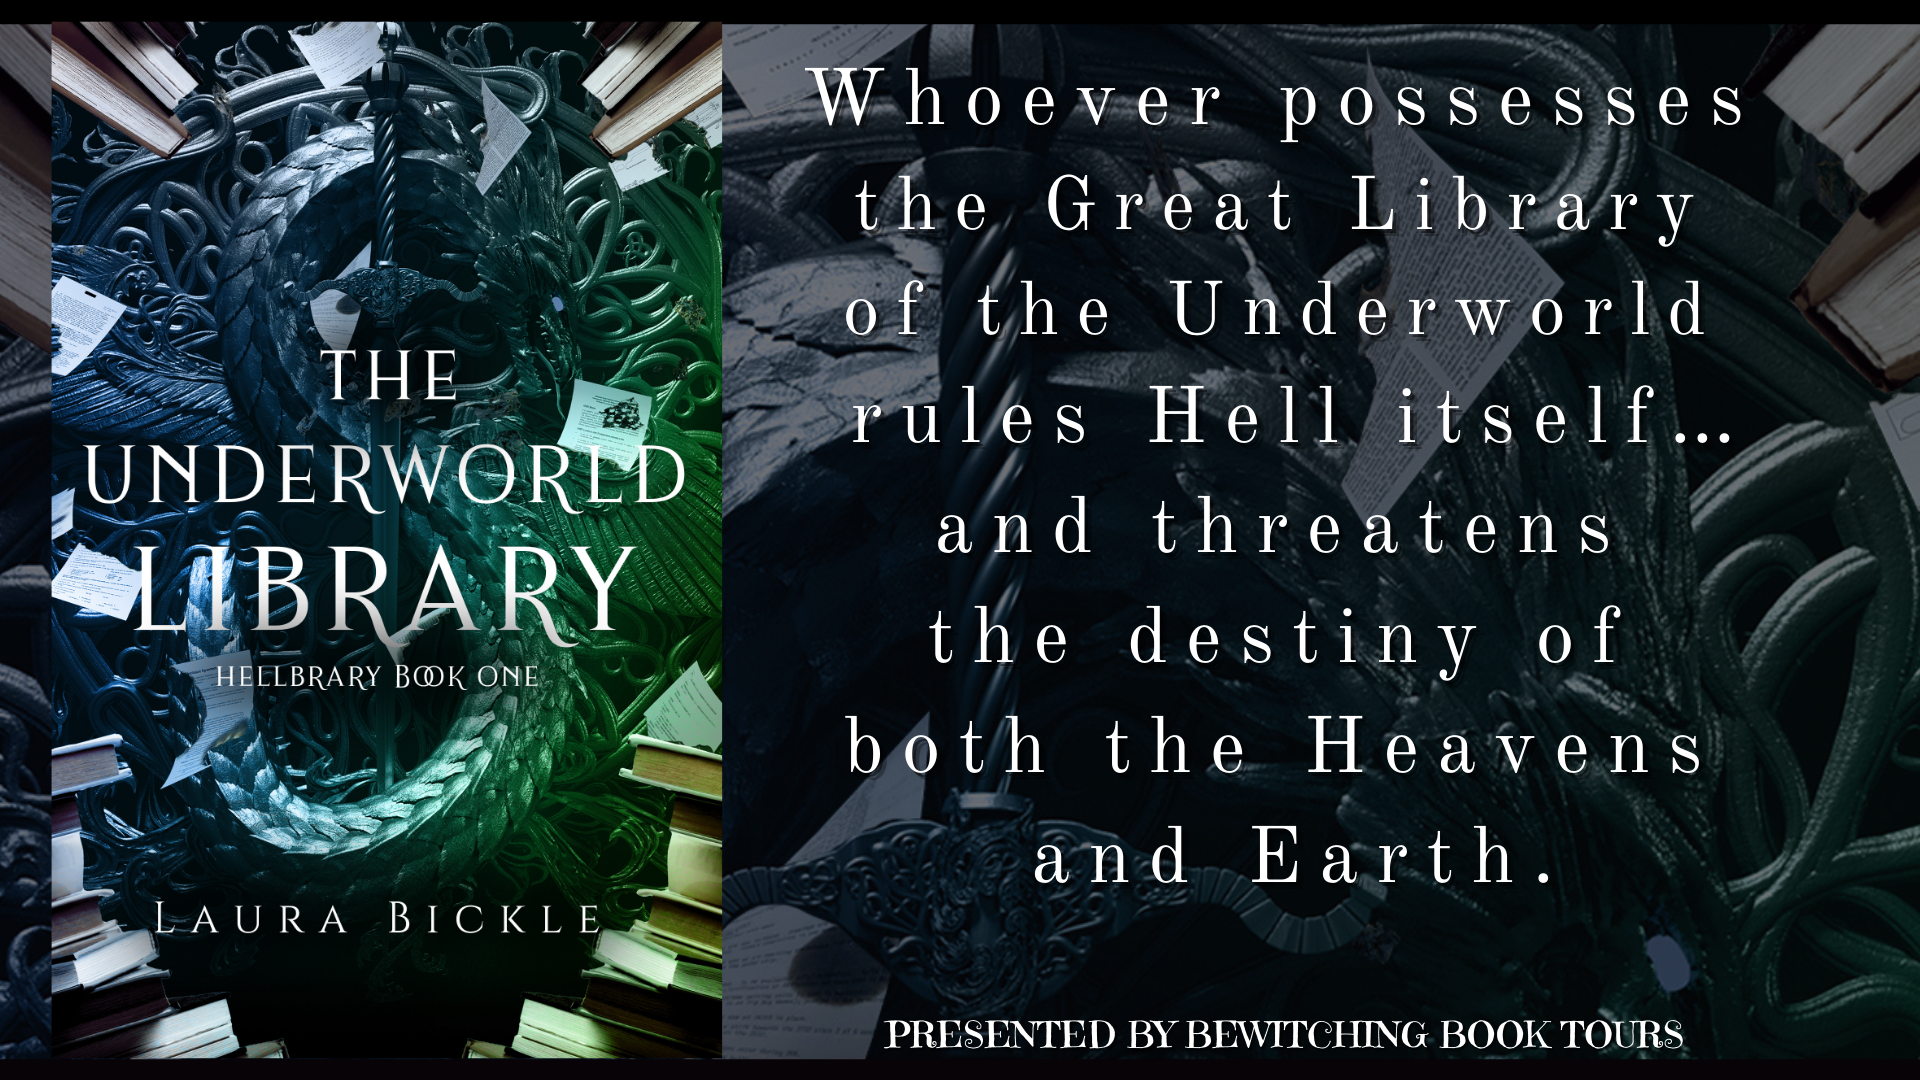 The Underworld Library – 4 Star Book Review